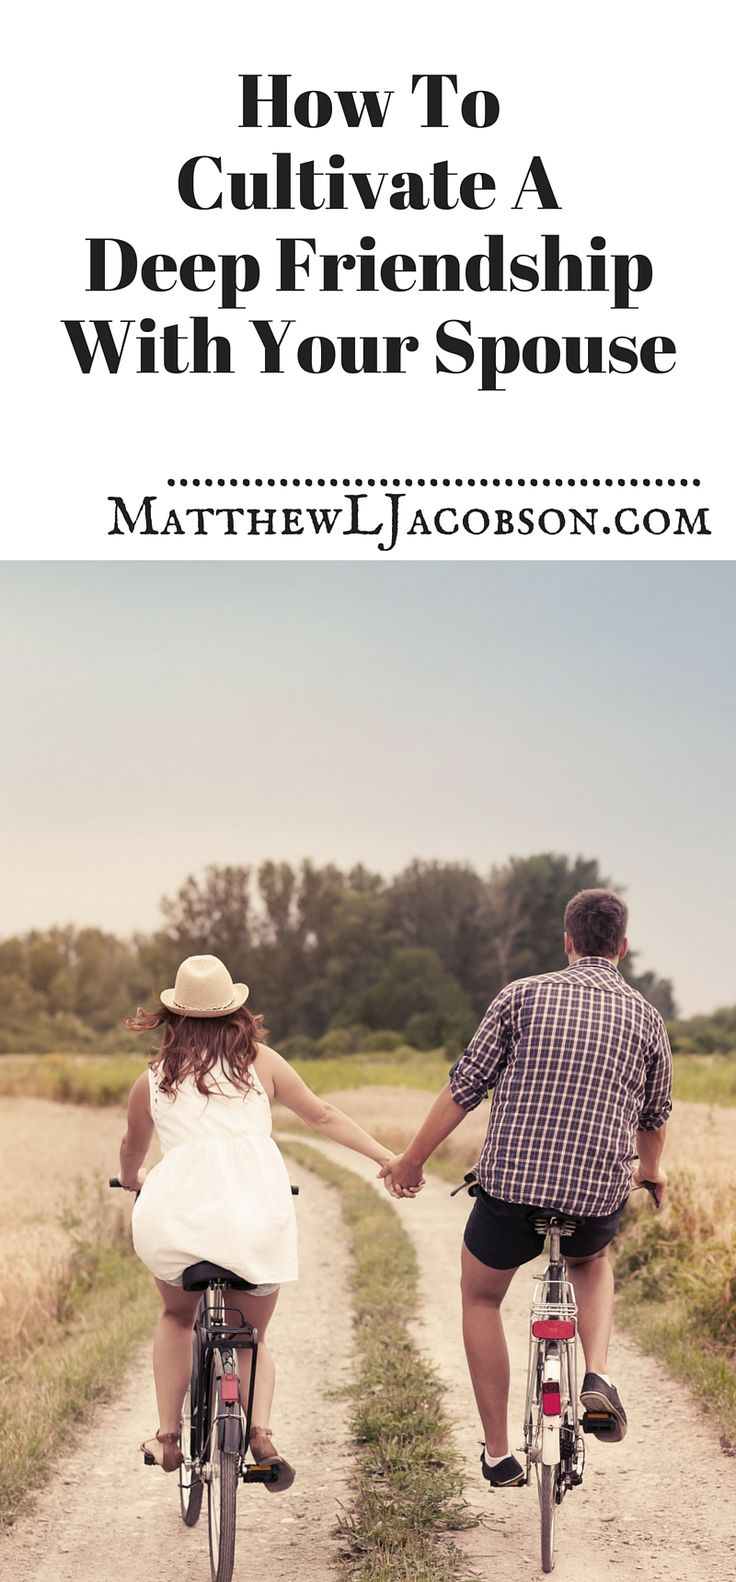 Many marriages are friendless, where the richness and depth of life go missing for years . . . sometimes forever. Don't let that happen to your marriage. Here's how to cultivate a deep friendship with the one you love.